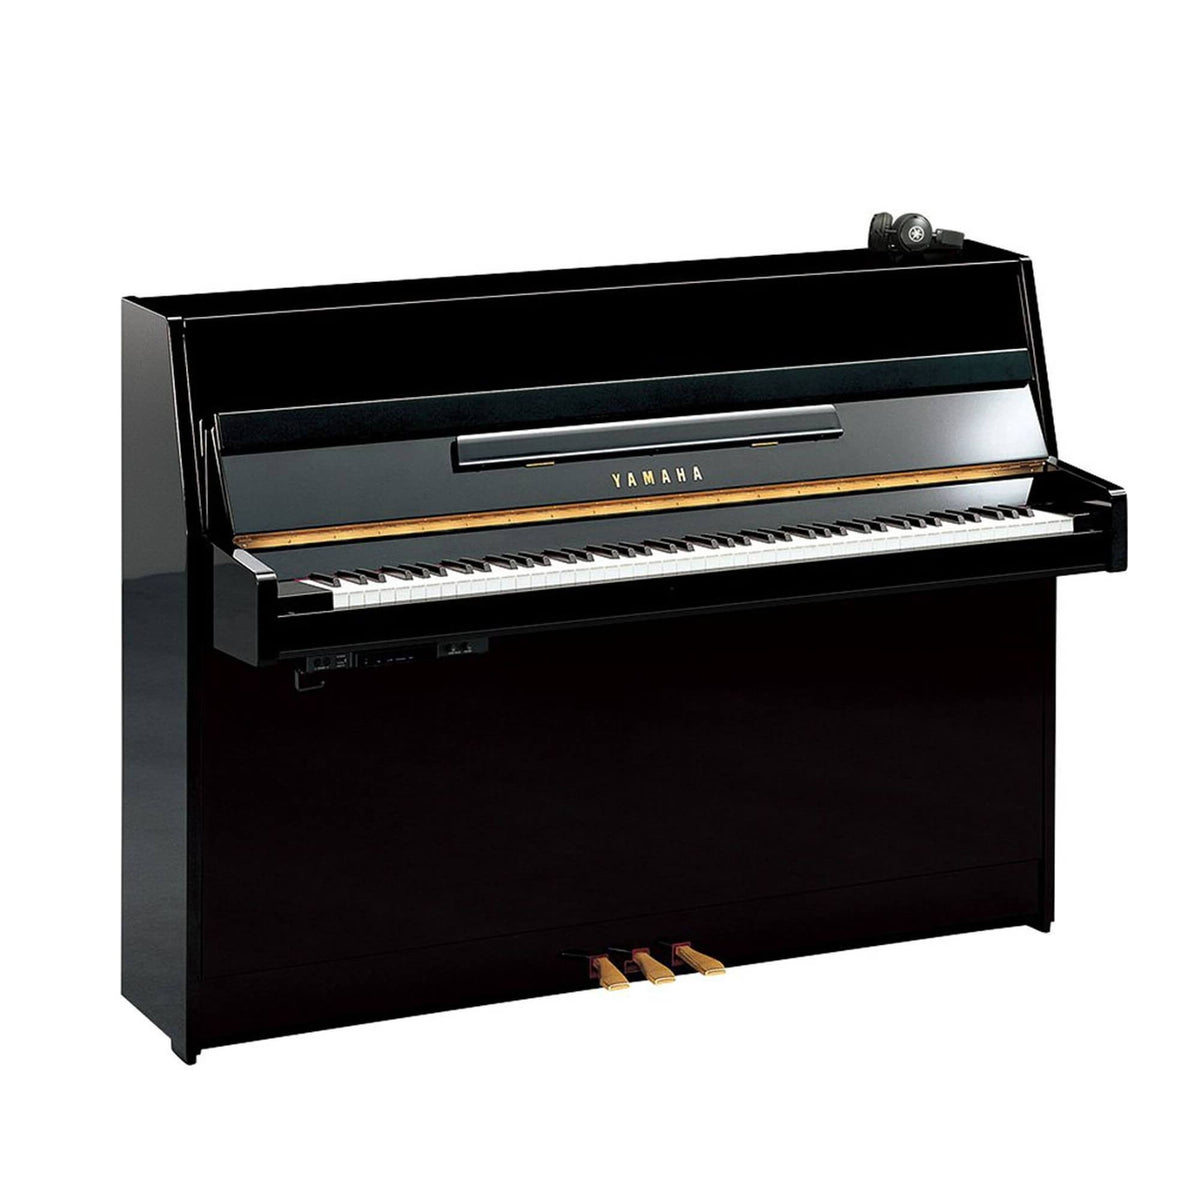 Yamaha JU109S Upright Piano Silent with Piano Bench - Polished Ebony